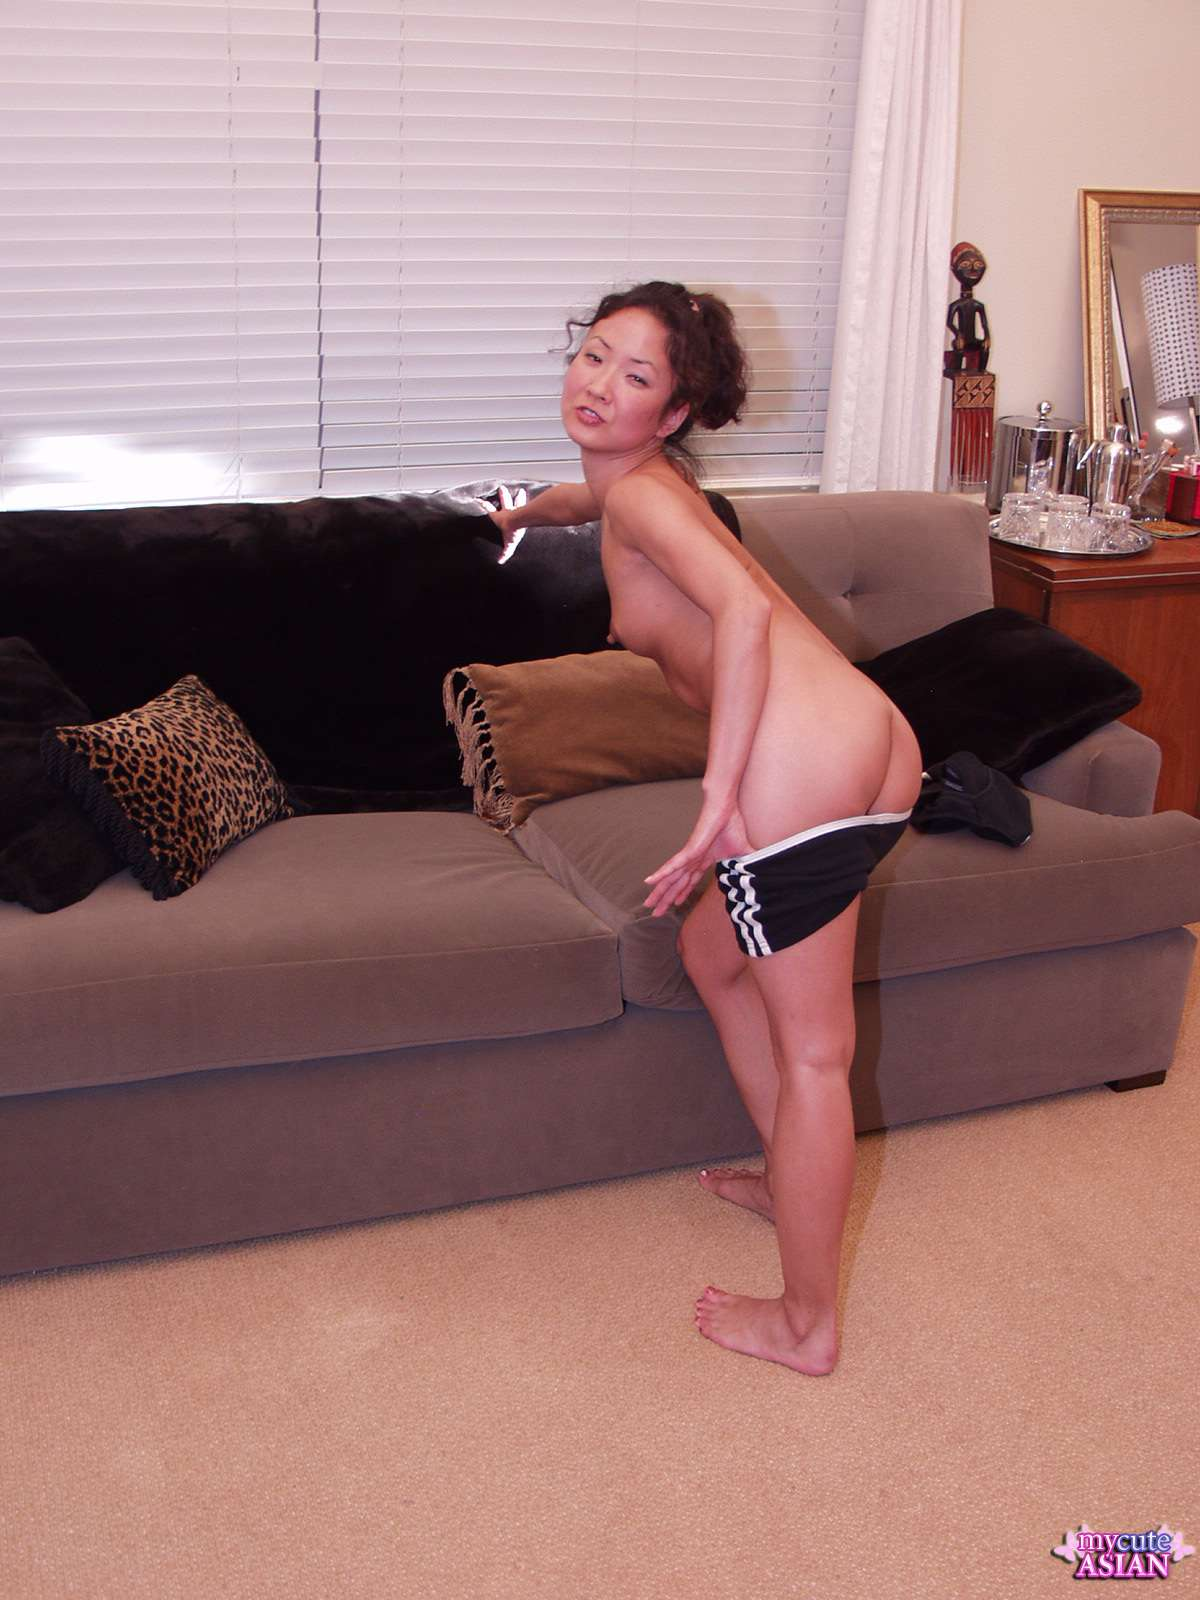 excellent question opinion, nude latina amateurs those on!